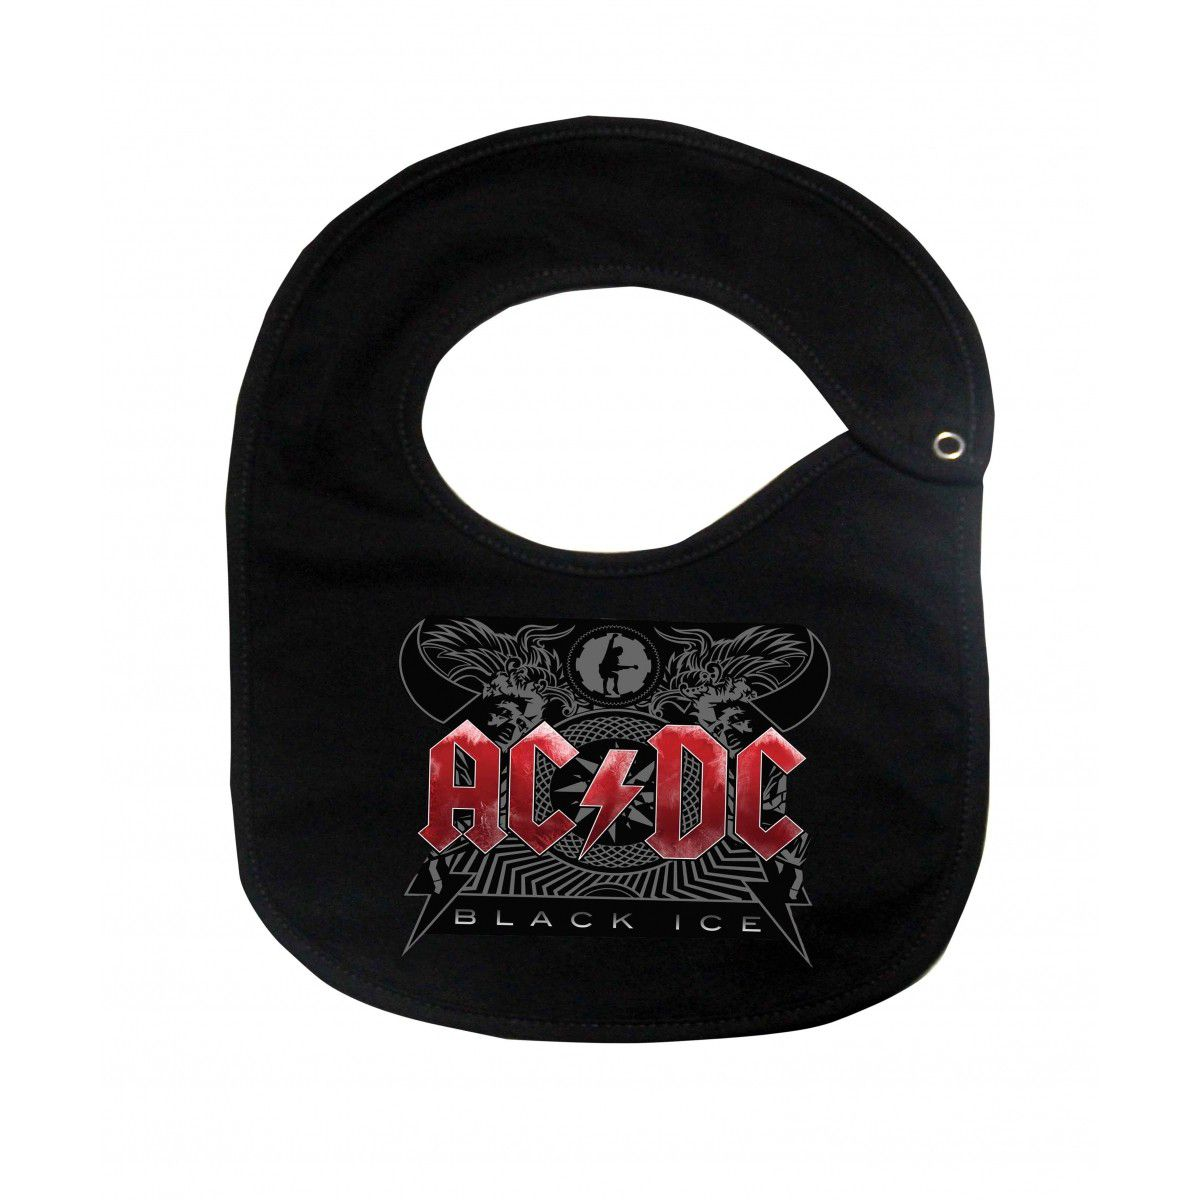 Body, Camiseta, Babador de  Rock Acdc Red Stamp   - Baby Monster S/A